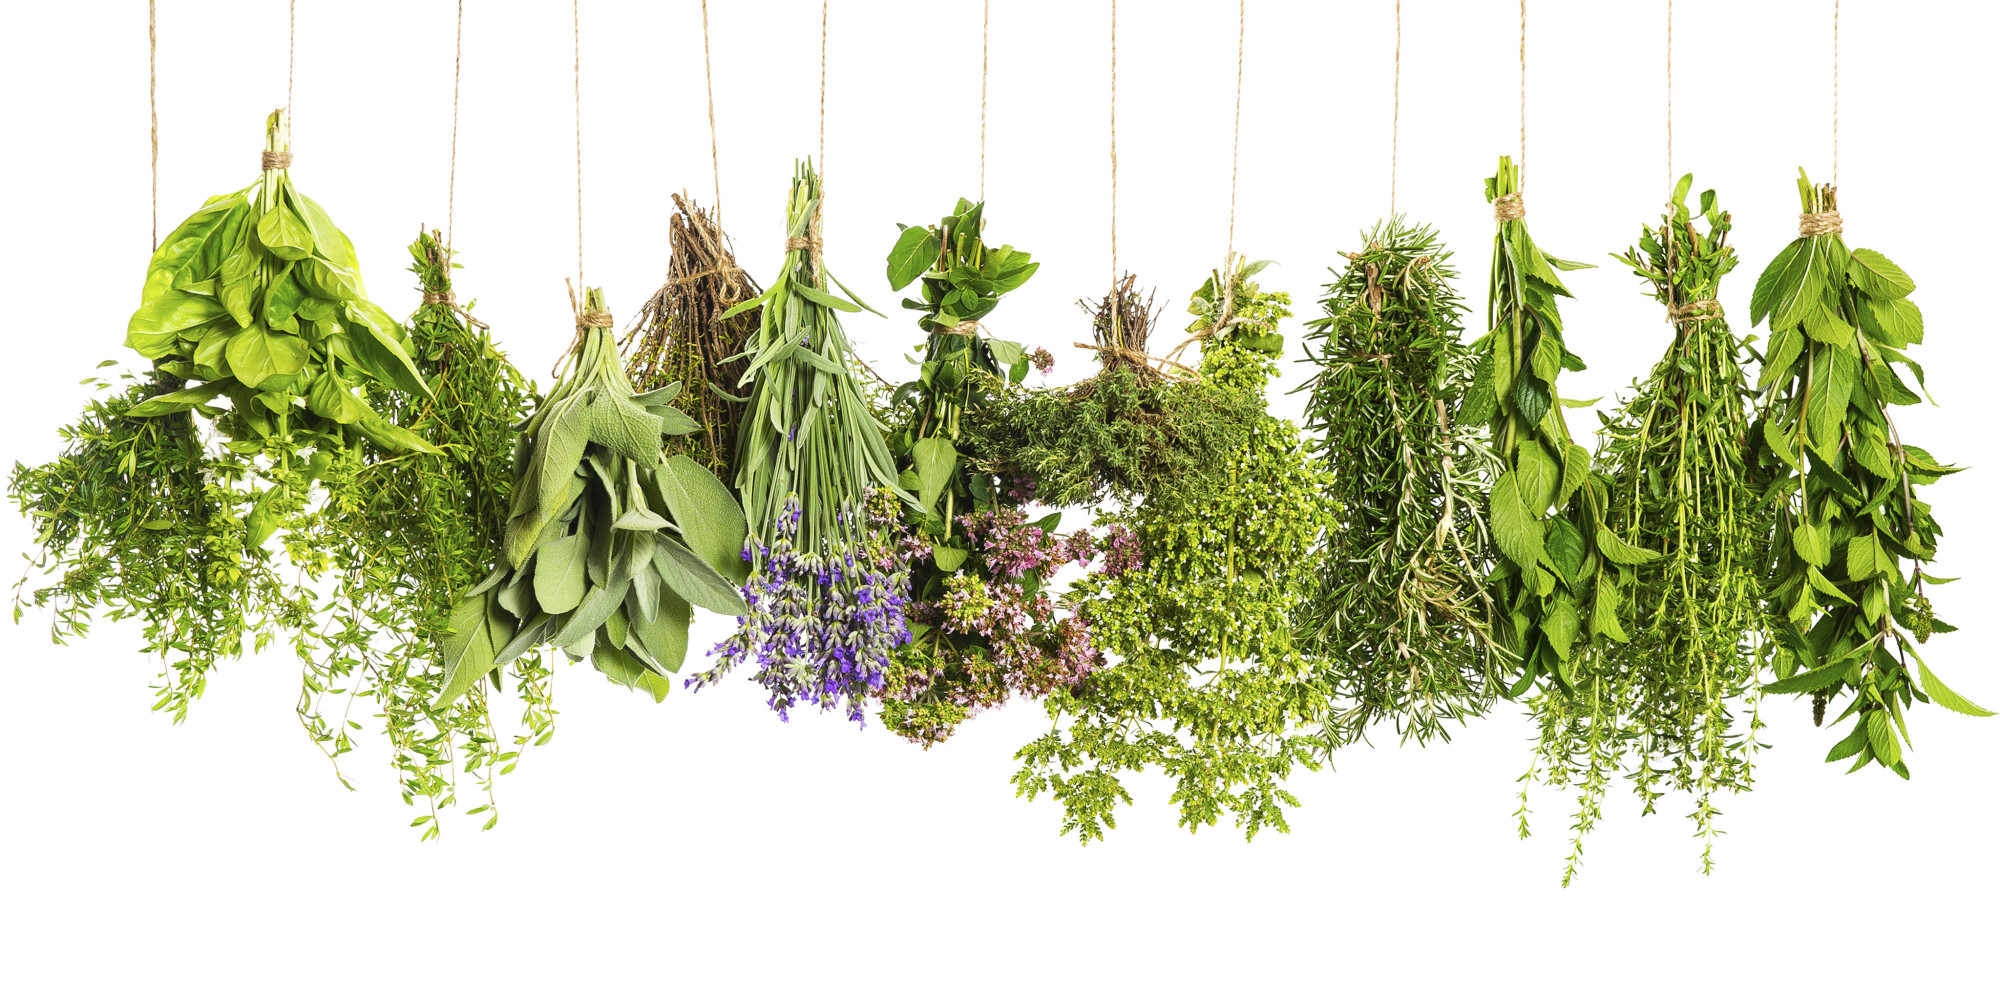 A Visual Guide To Cooking With Herbs | HuffPost